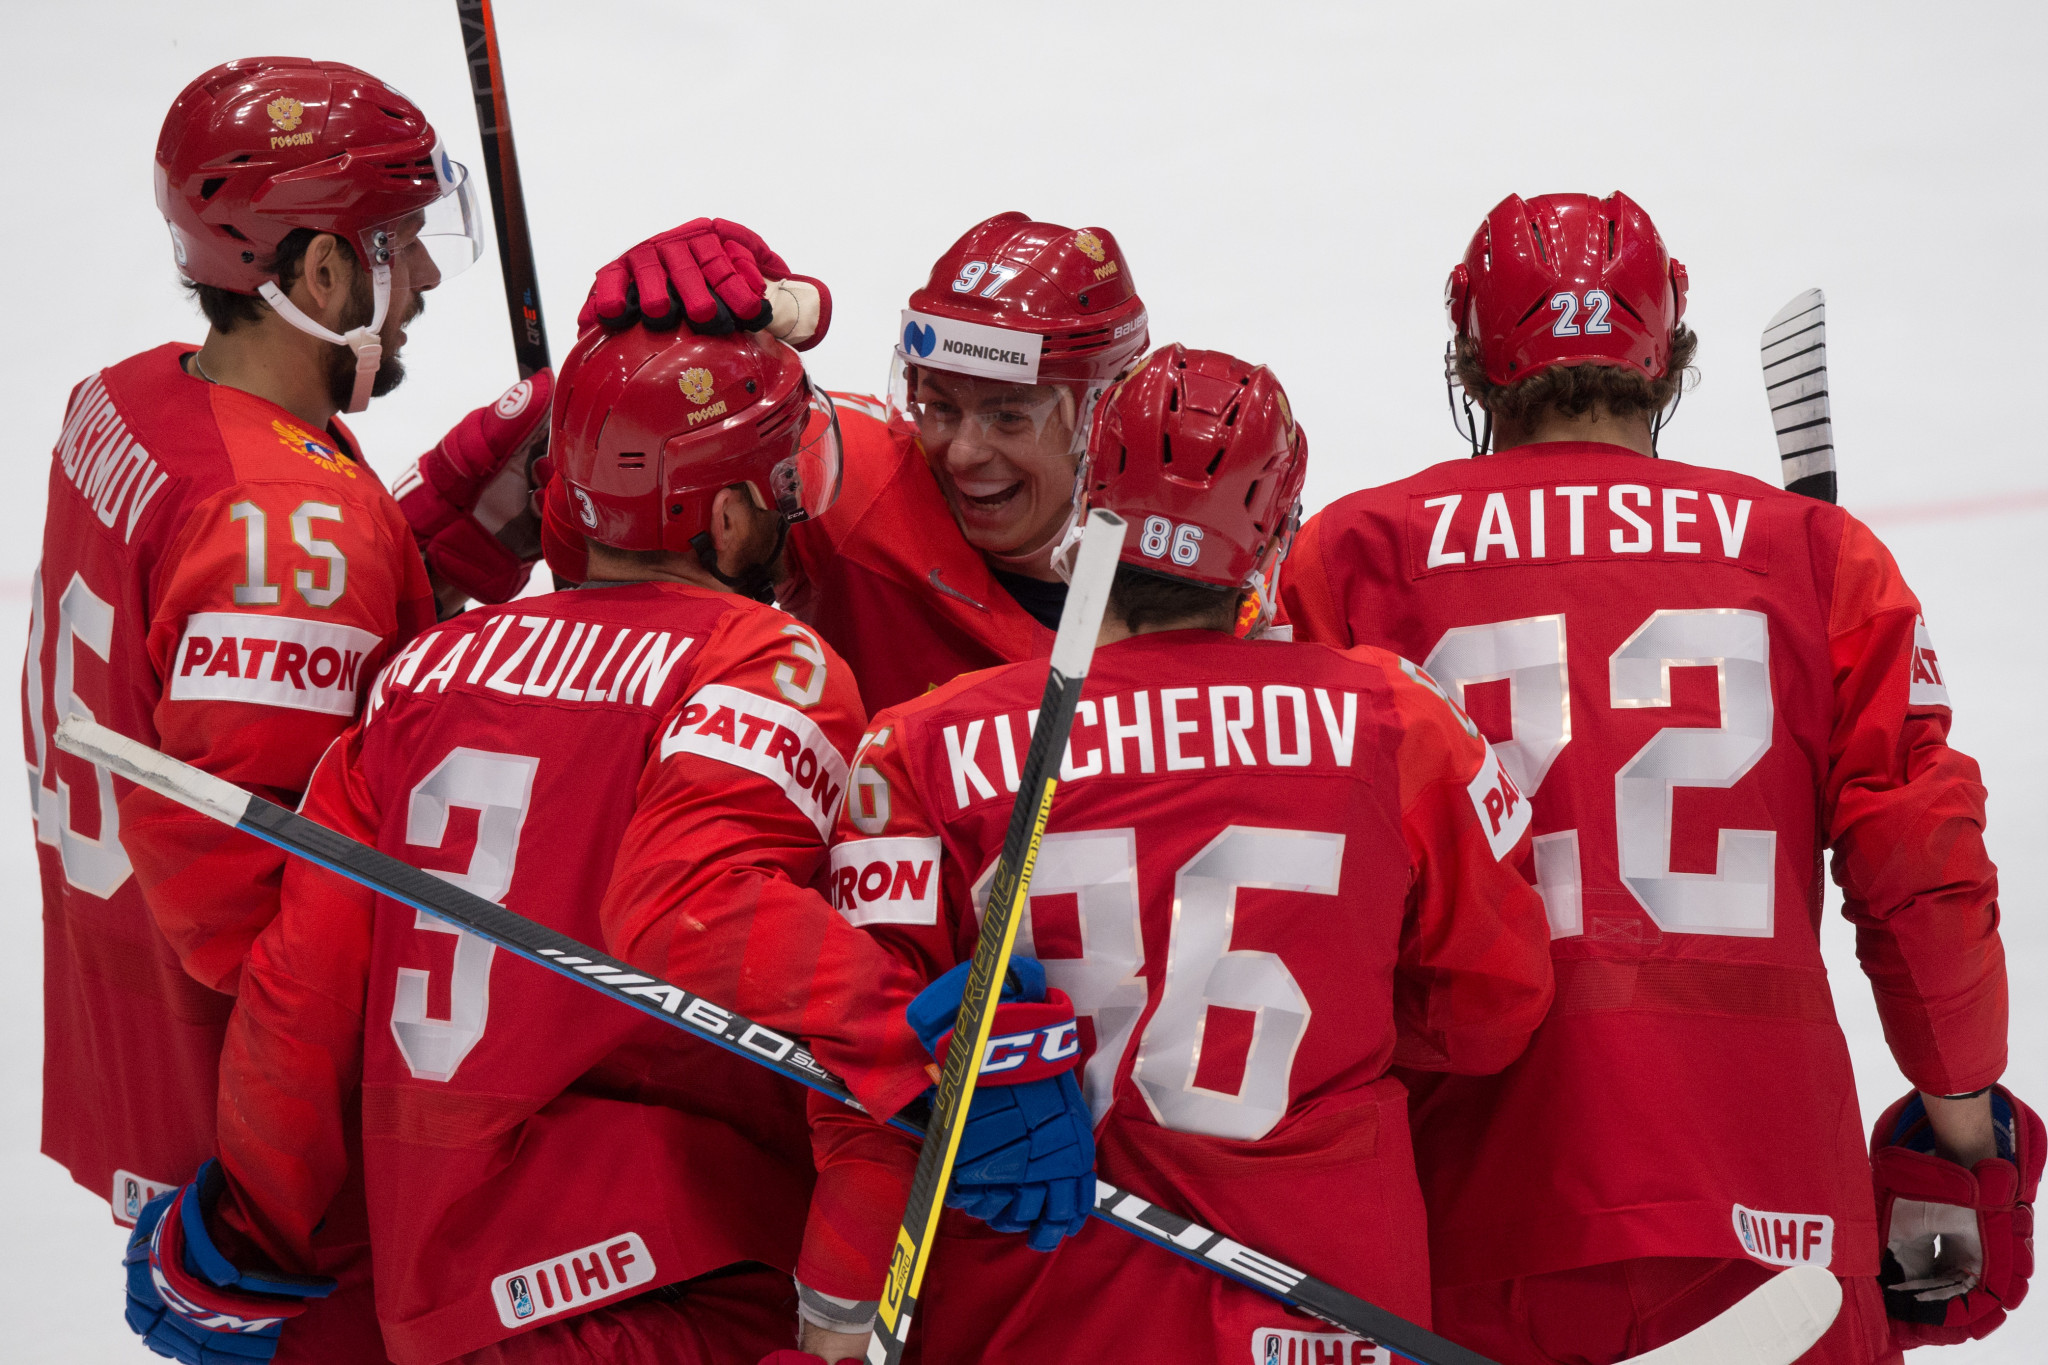 Russia win again to hit Latvia's hopes at IIHF World Championship